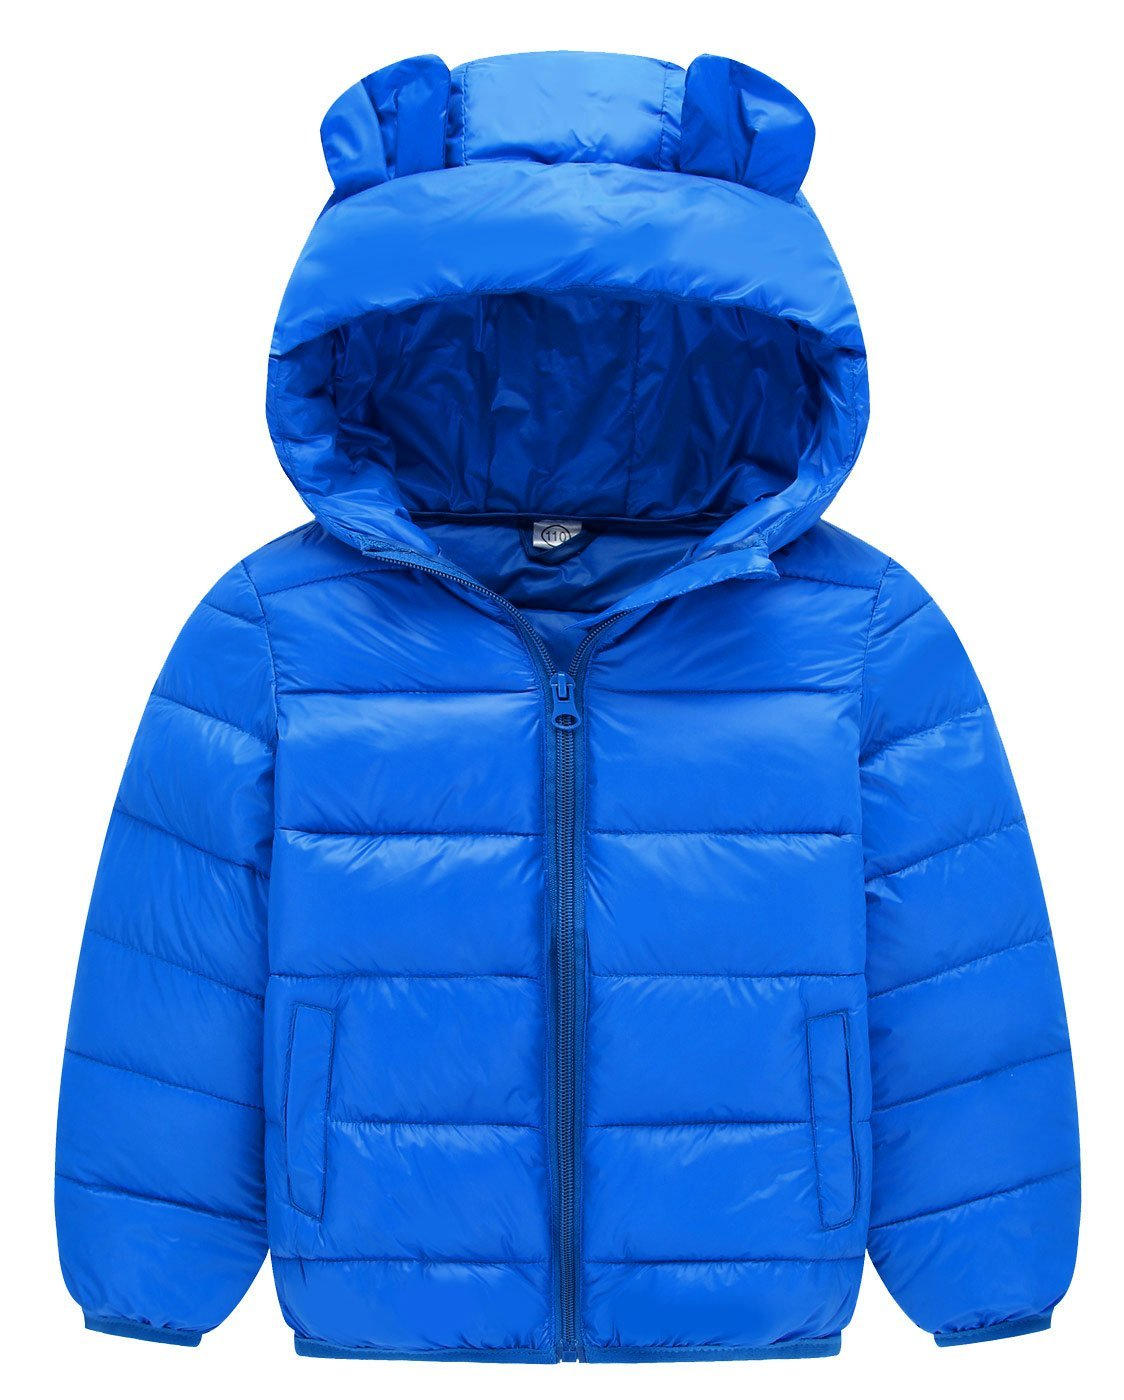 Boys Winter Jacket Thermal Warm Puffy Padded Comfortable Cottom Long Sleeve Zipper Up Outwear 5-6T Blue